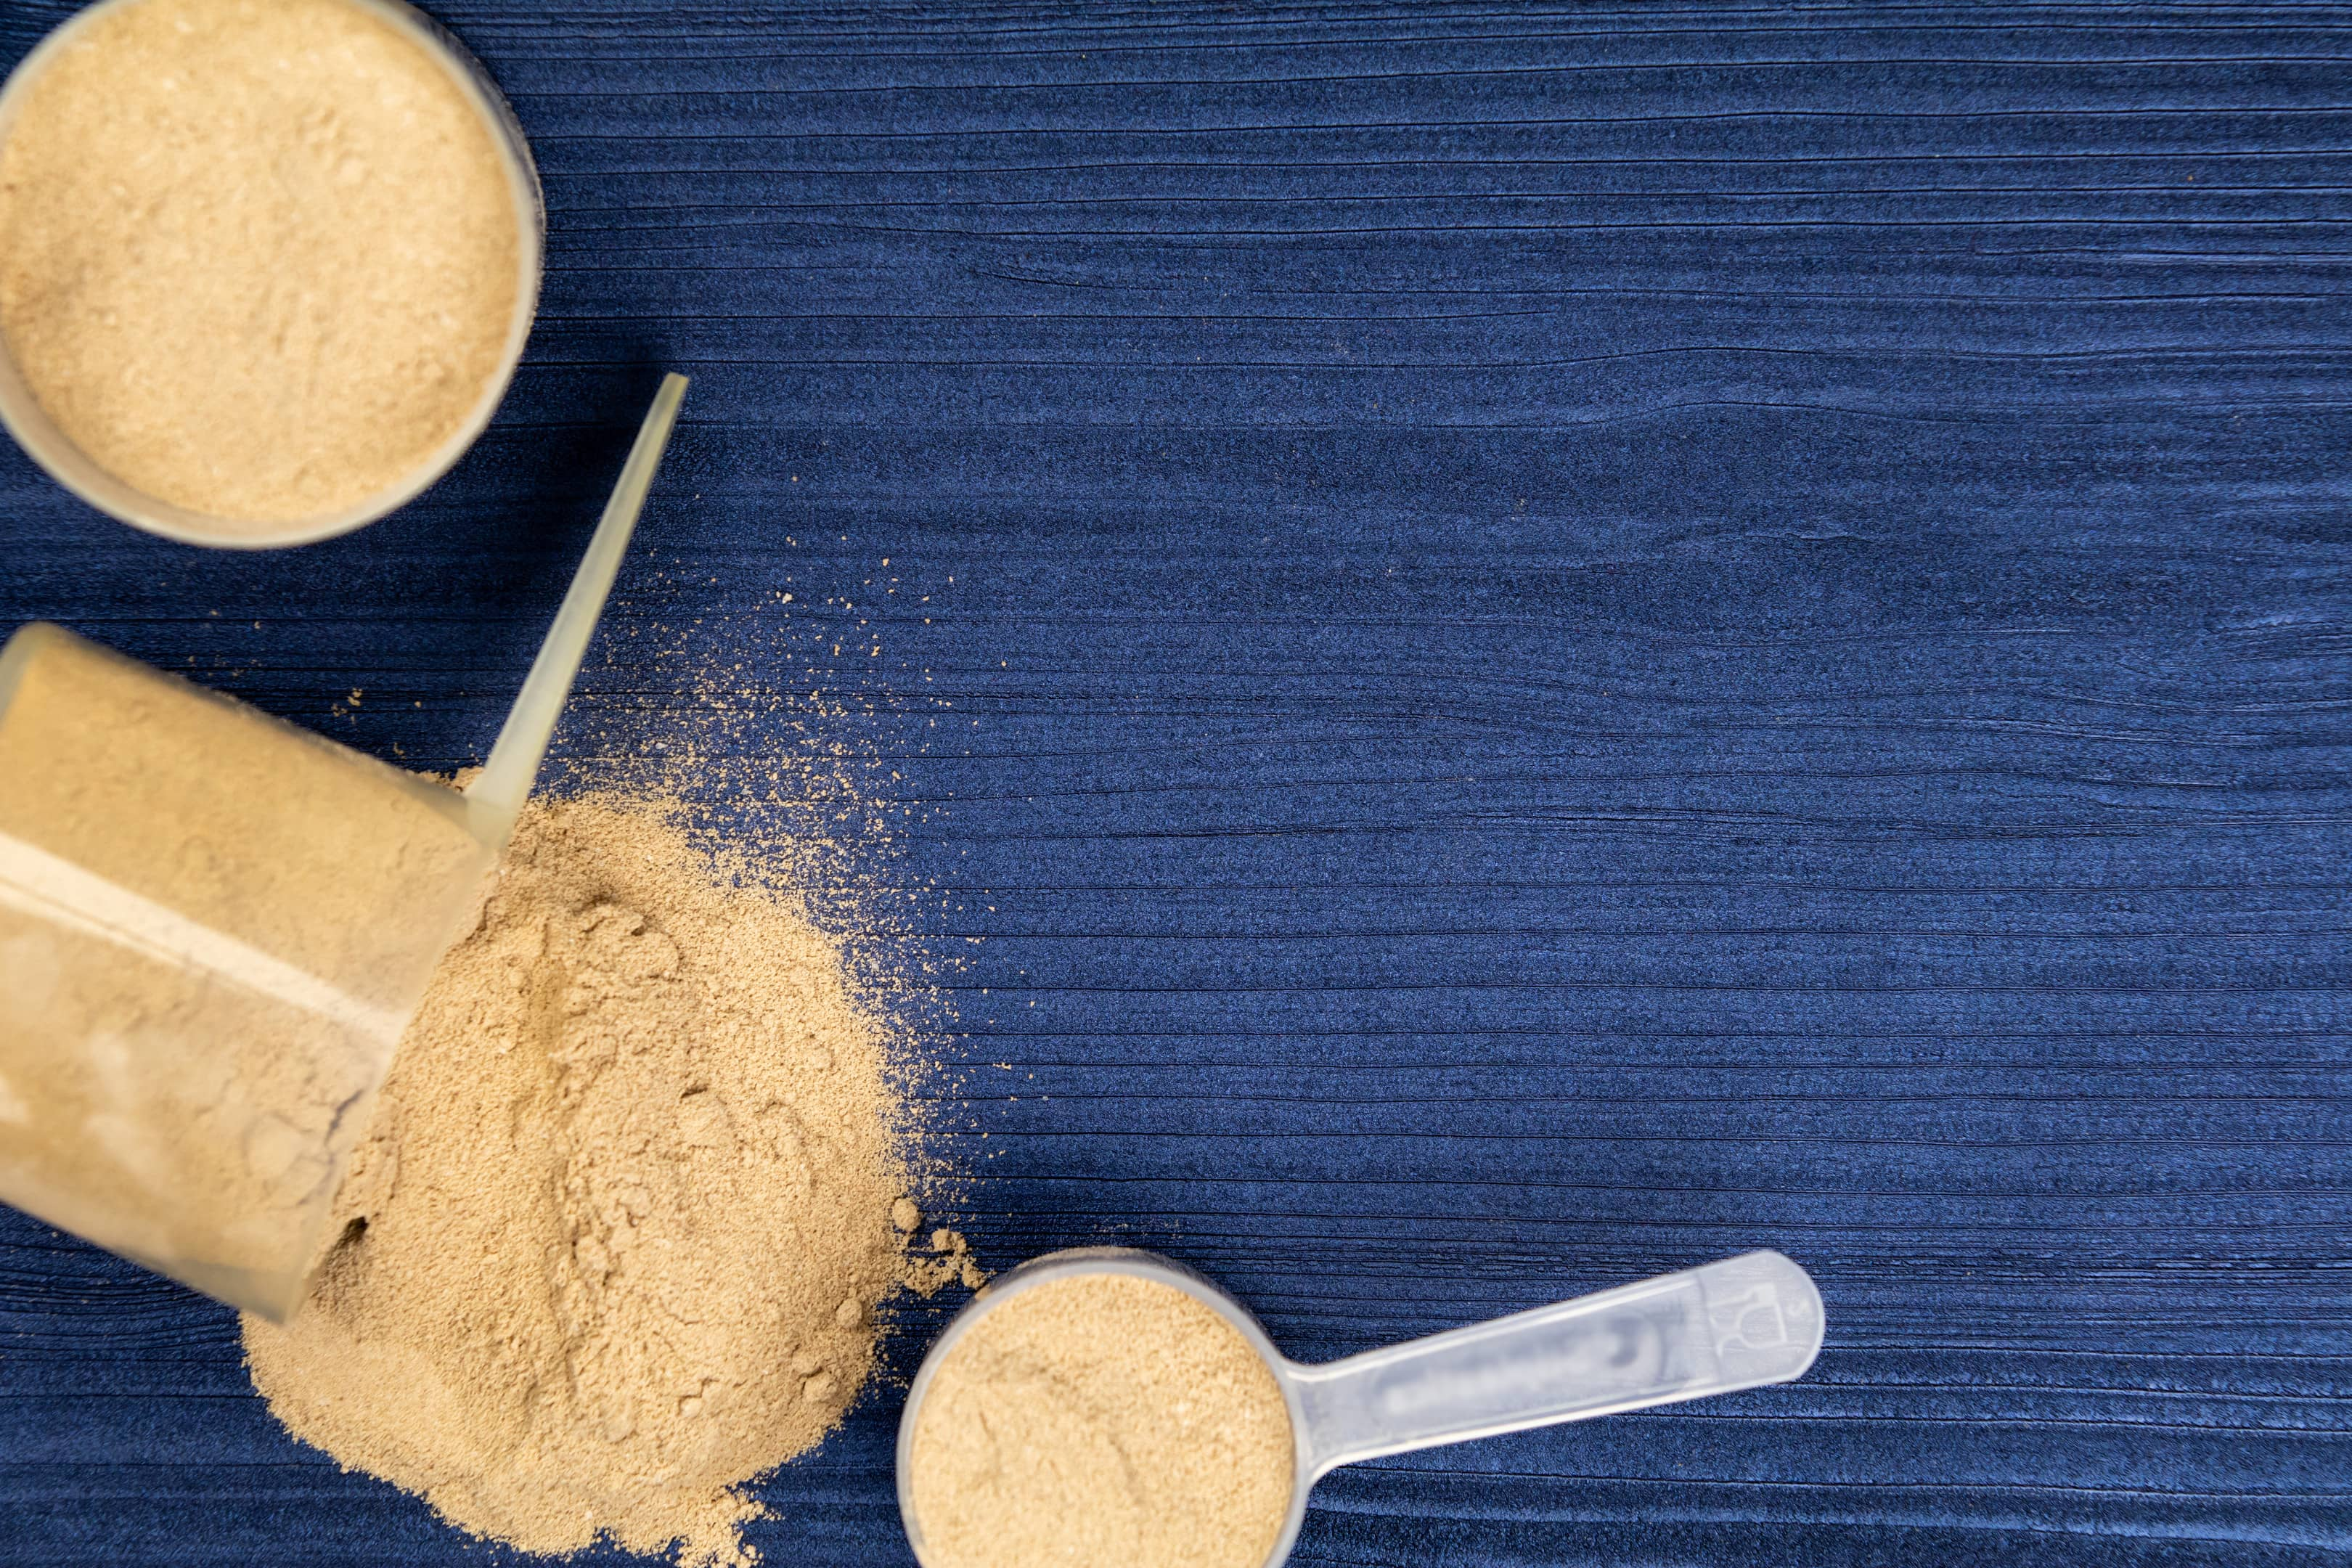 Scoops filled whey protein powders on blue background